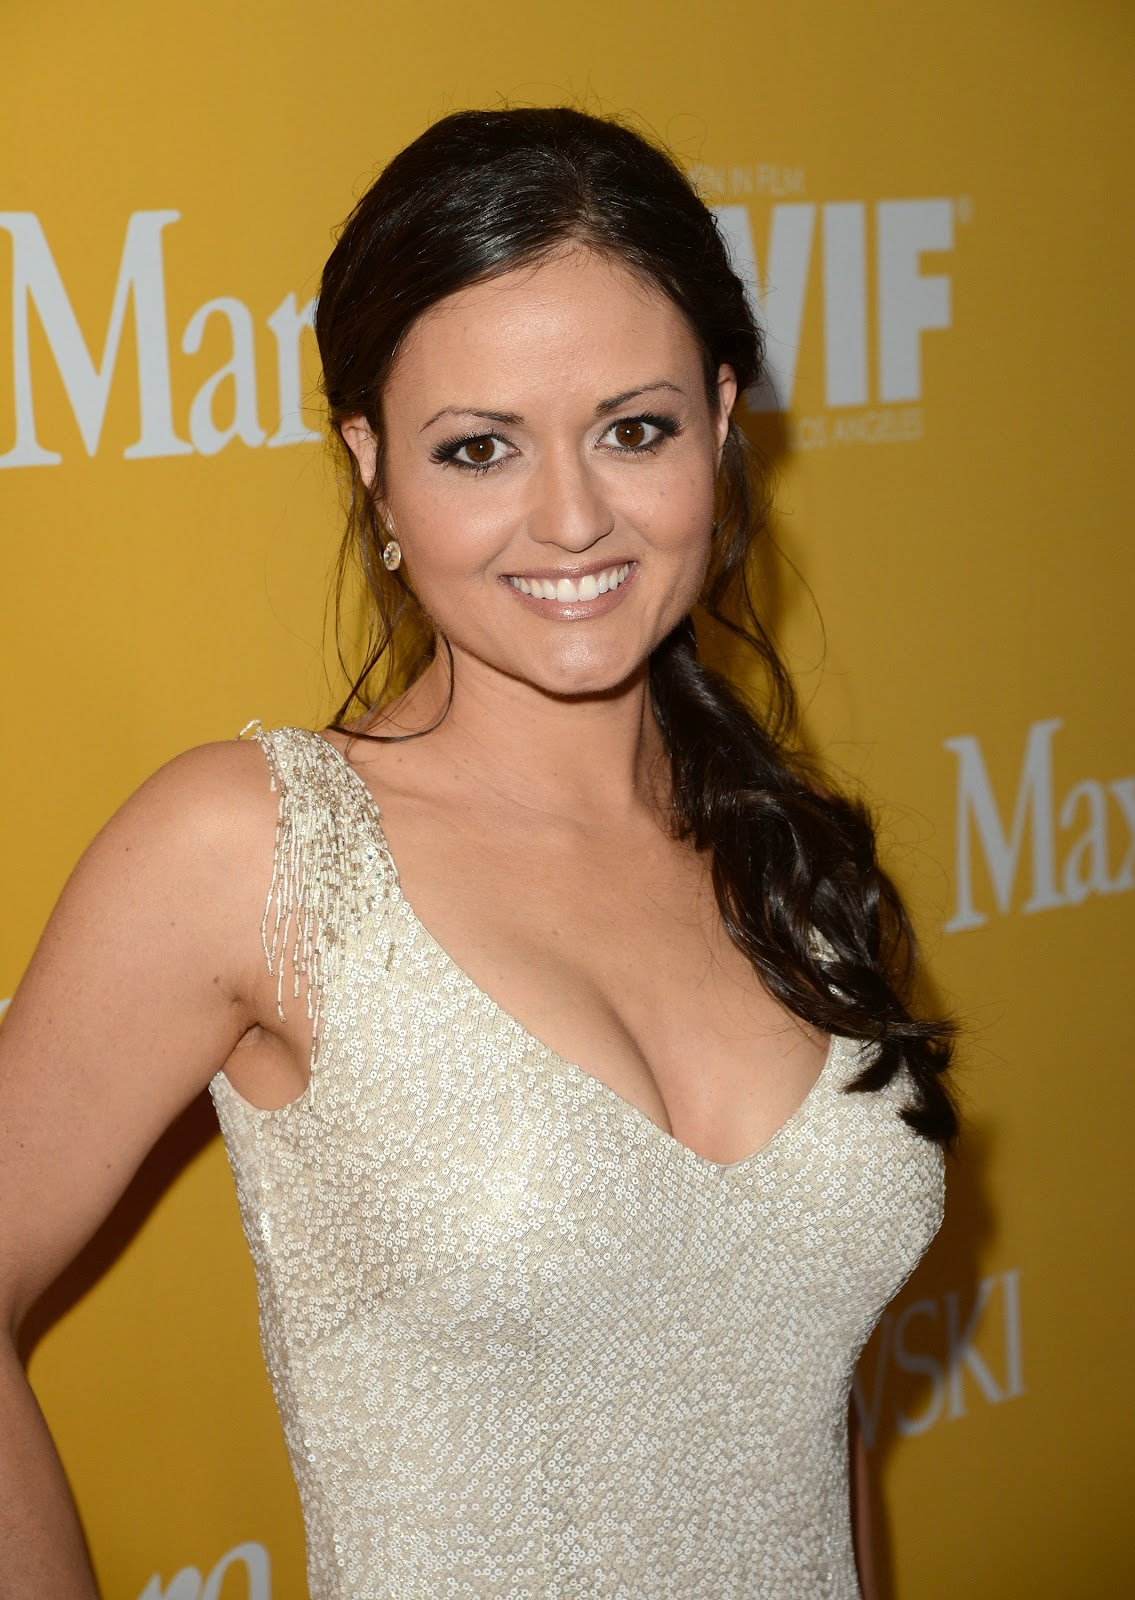 Rather Danica mckellar as winnie cooper with you